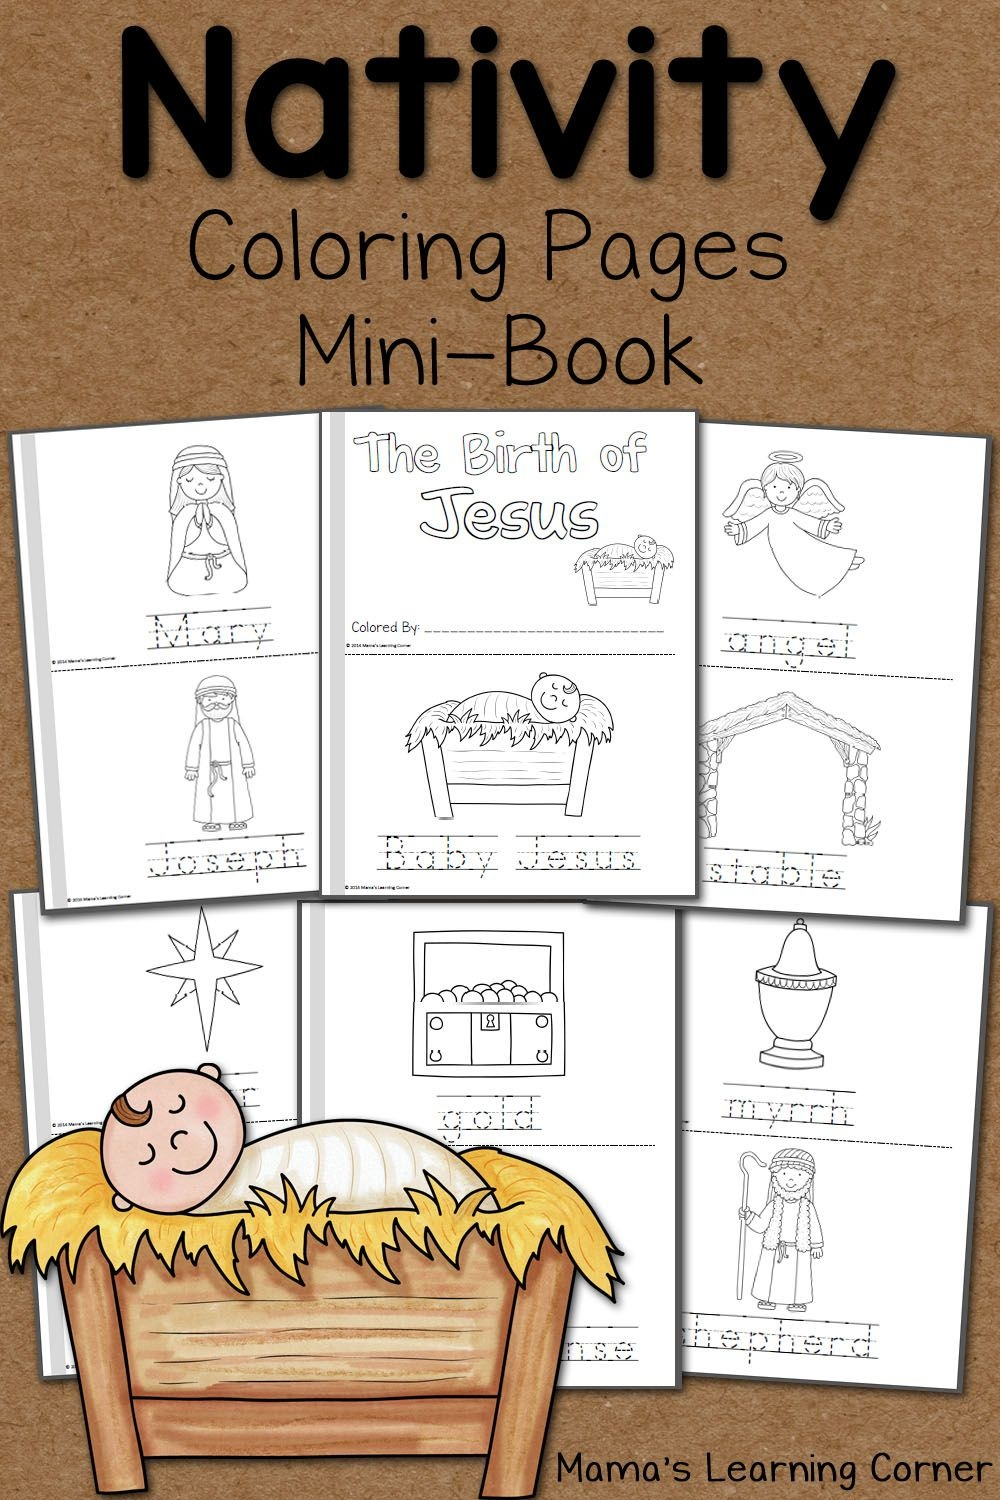 Nativity Coloring Pages | Printables | Nativity Coloring Pages - Free Printable Nativity Story Coloring Pages